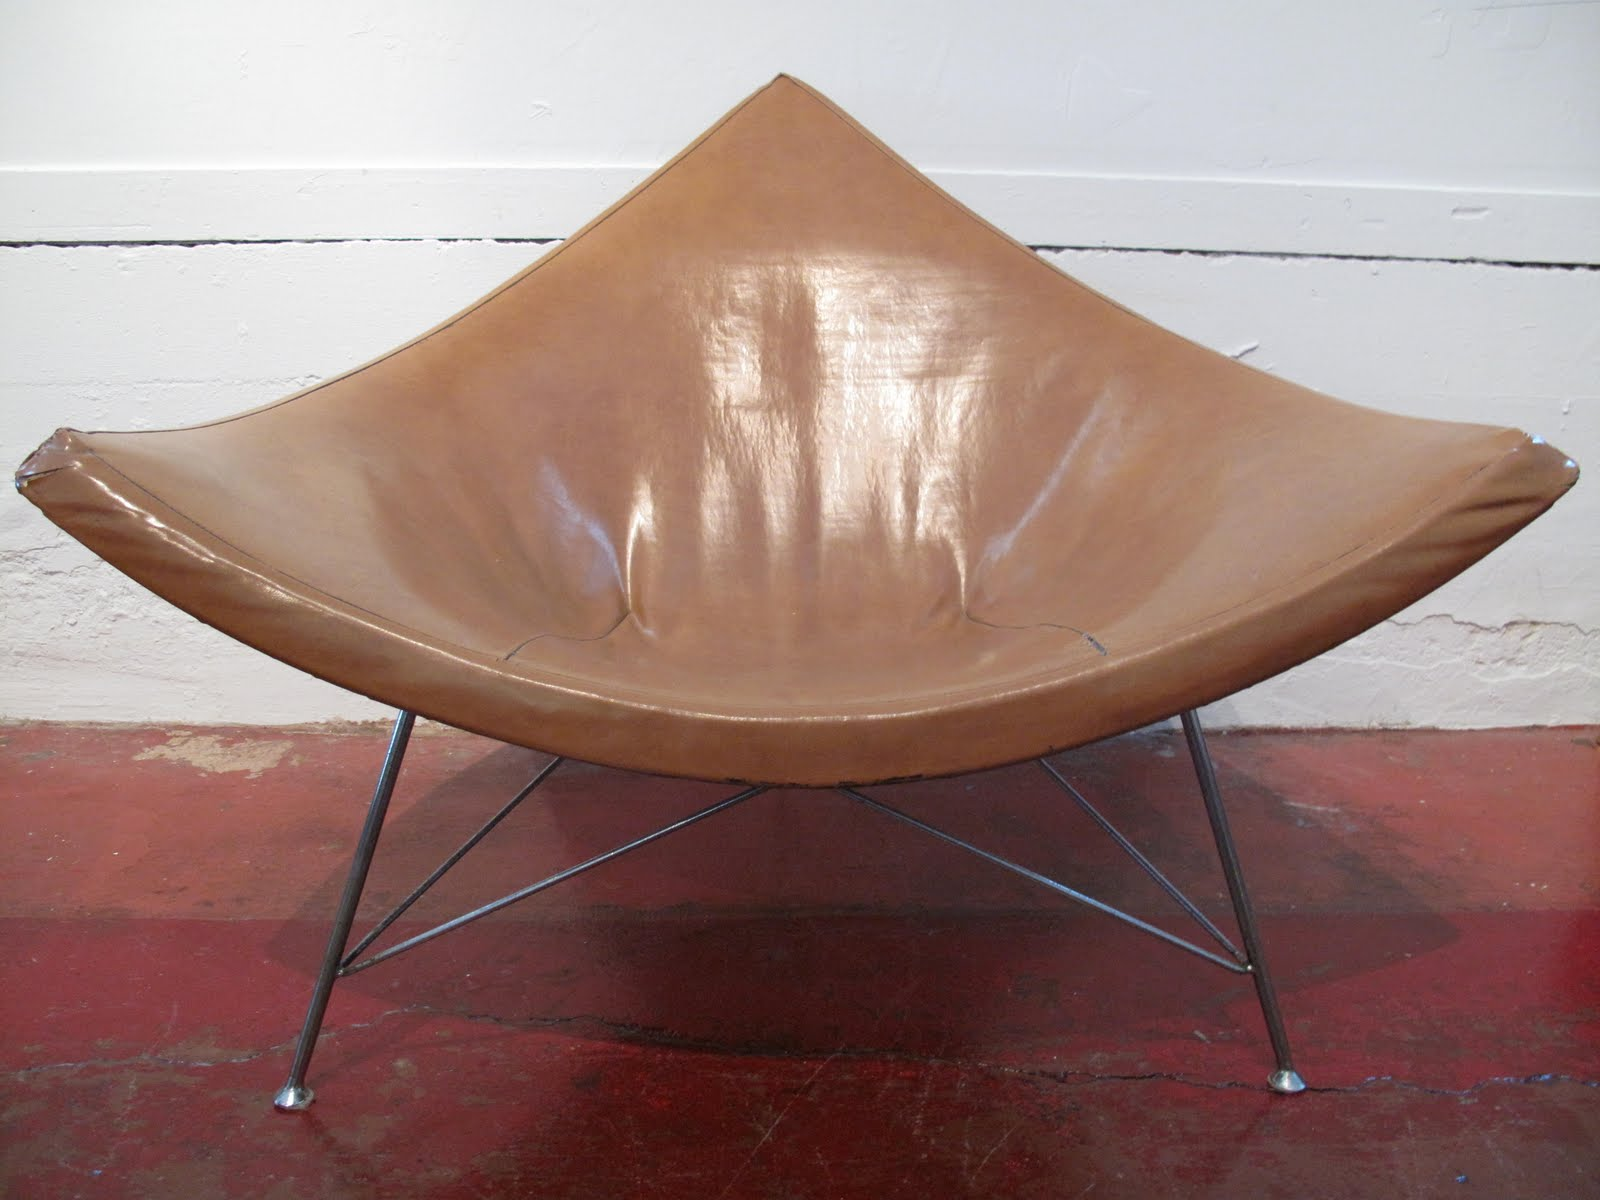 Just in modern george nelson 1st production coconut chair herman